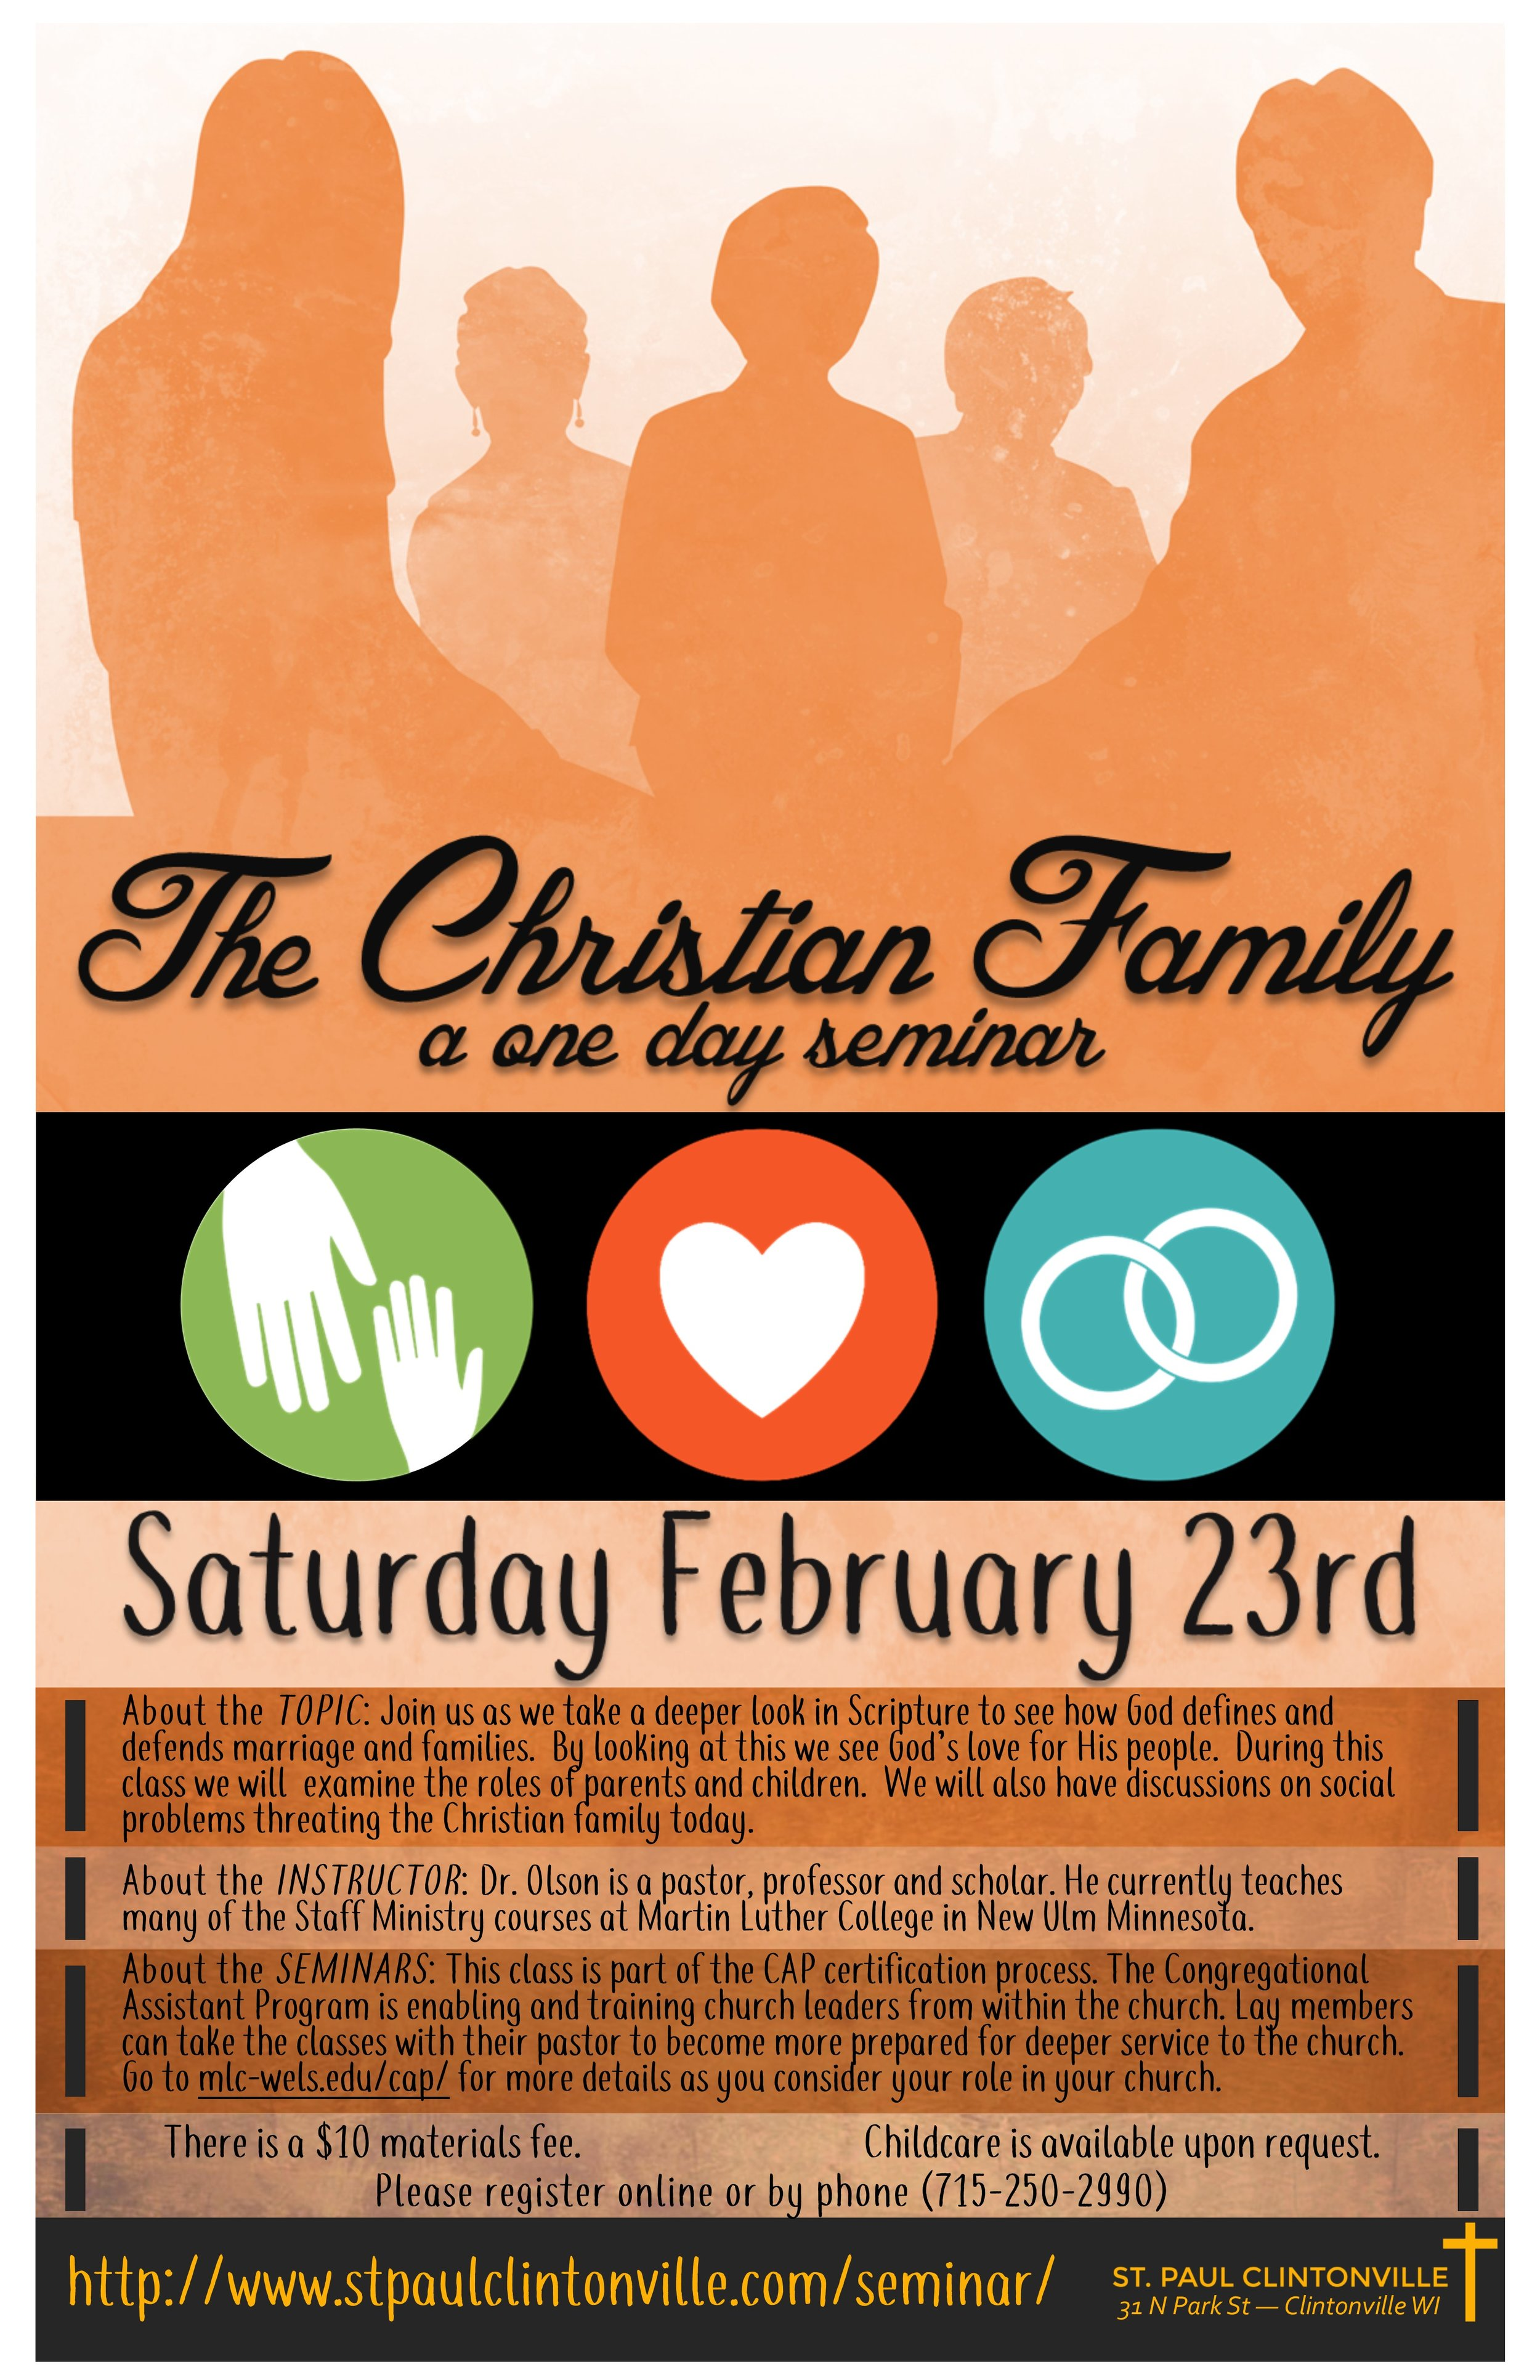 POSTER: one day Christian Bible Study and Training on the Christian Family, February 23, 2019 at St. Paul Church in Clintonville 54929